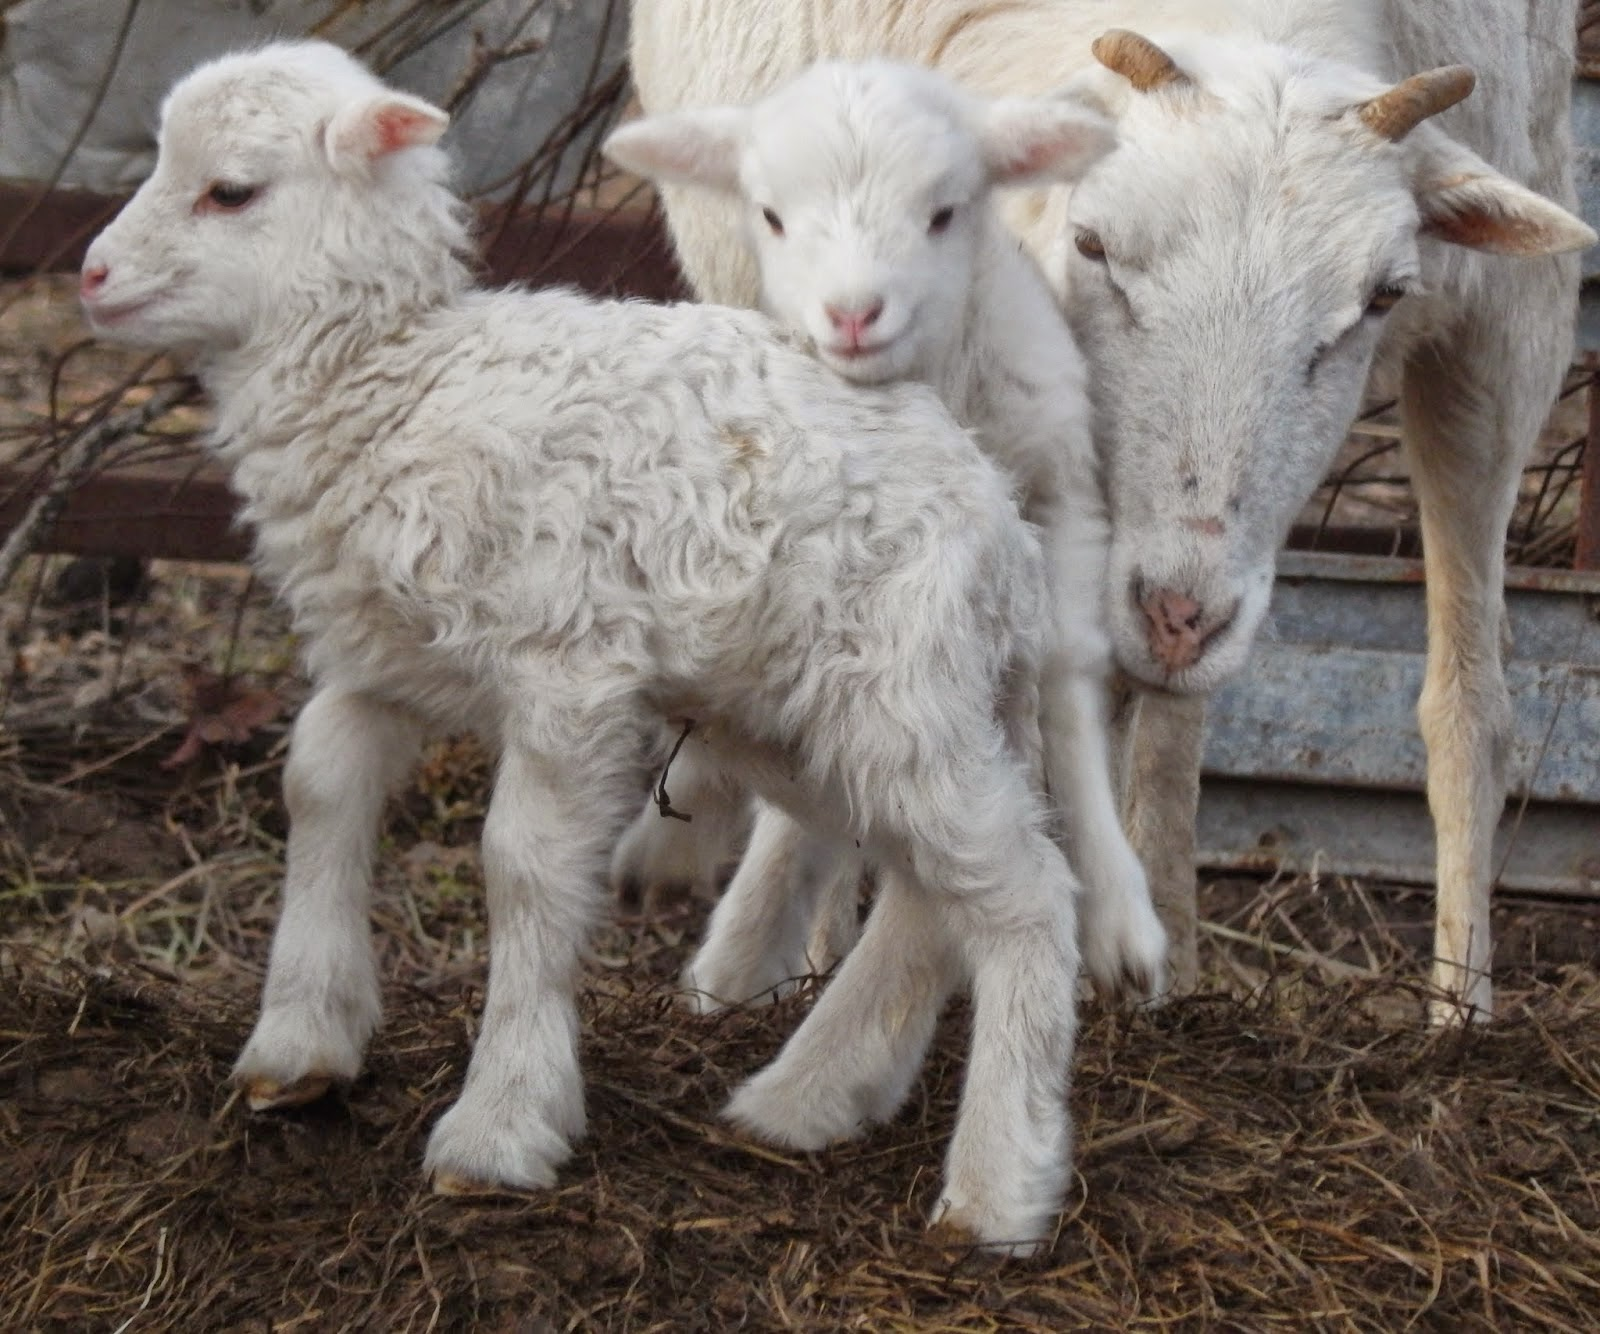 Lambs: A Dose of Cuteness, shared by Clearwater Farm